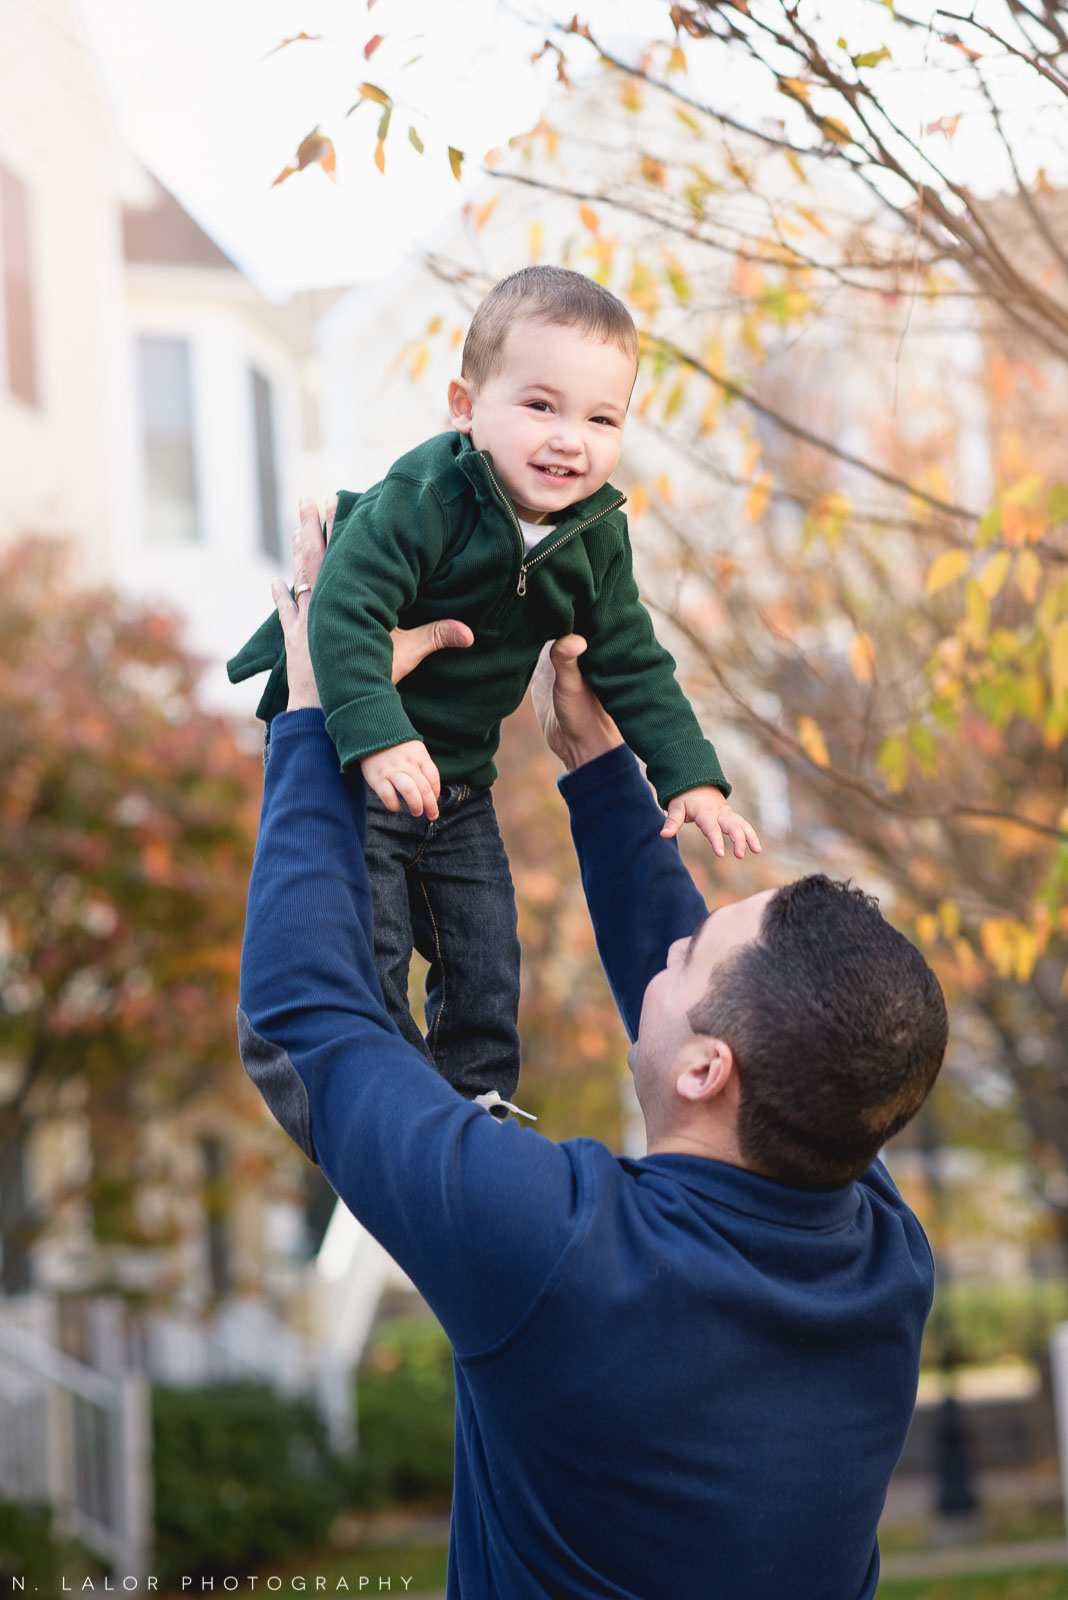 Dad throwing his happy son up in the air. Lifestyle family portrait by N. Lalor Photography. Fairfield County, Connecticut.